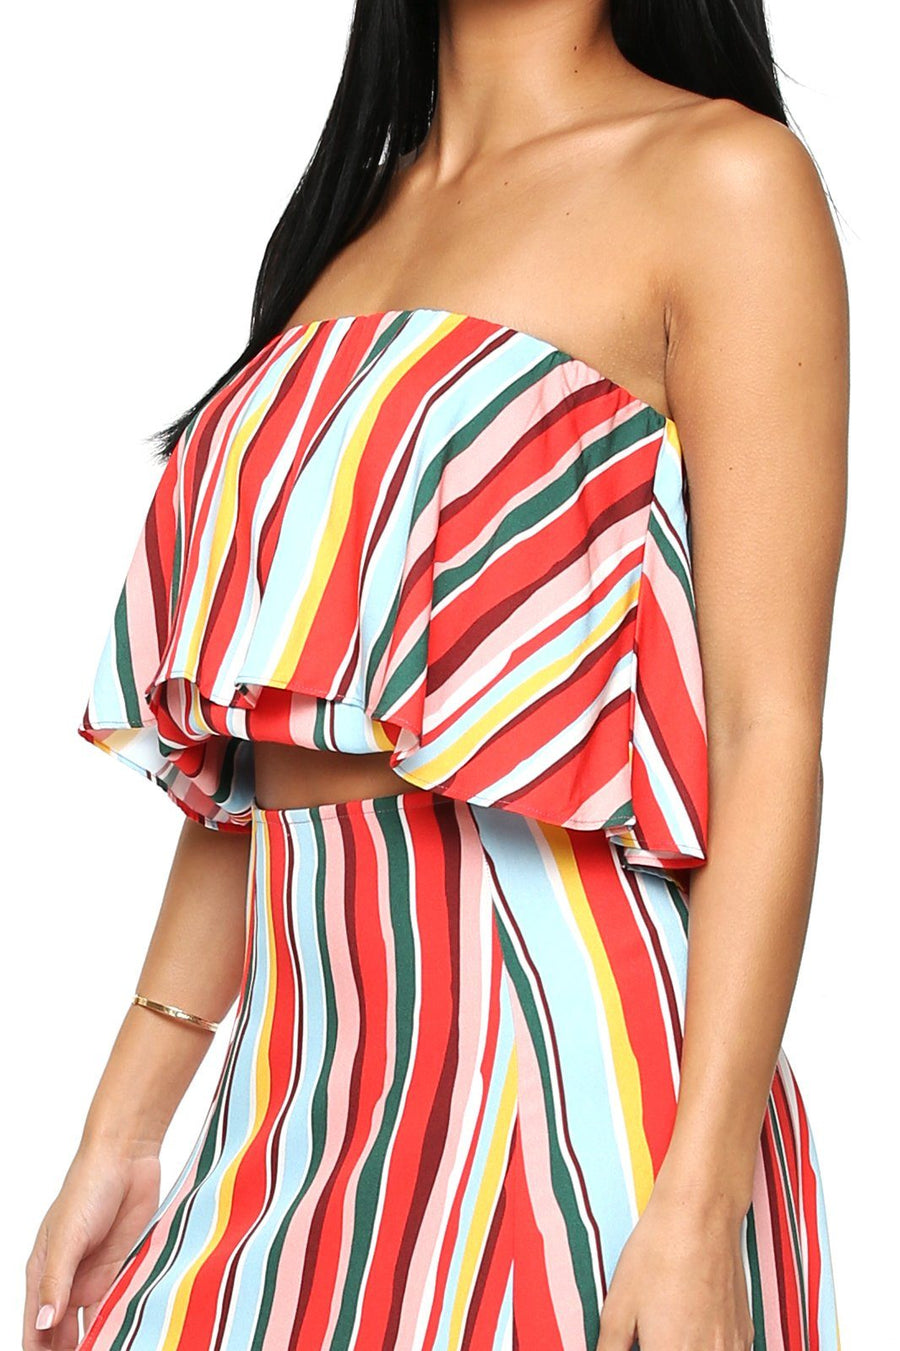 Huntington Layered Top - Vibrant Stripe - Shore